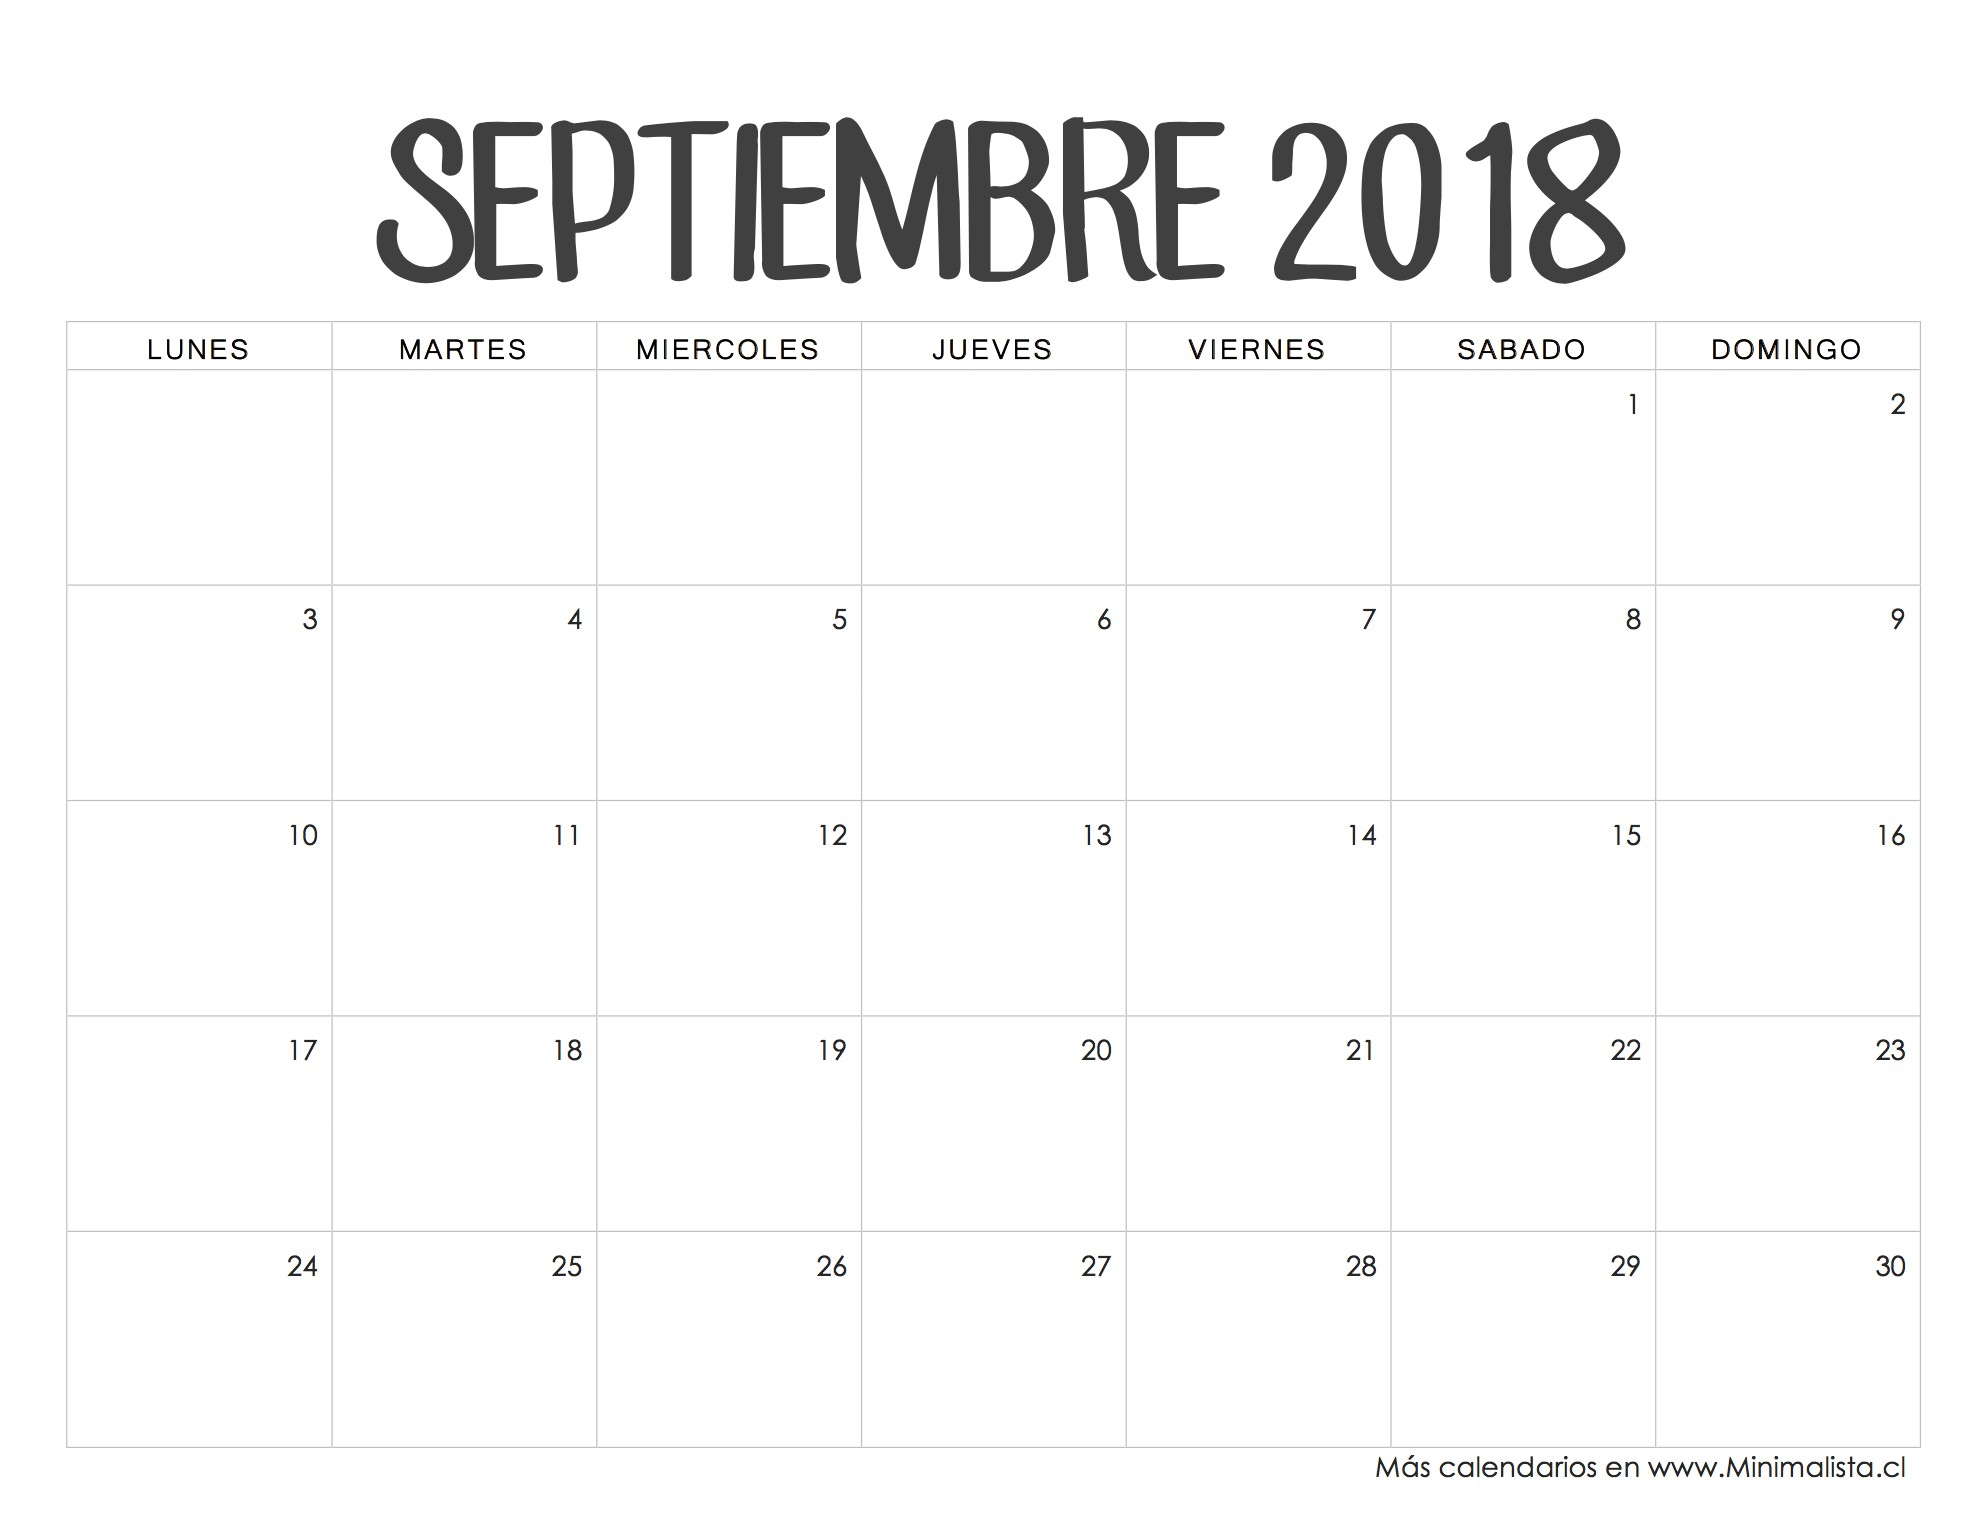 Calendario Chile 2019 Chile Actual Calendario Septiembre 2018 Ideas Para Mi Agenda Of Calendario Chile 2019 Chile Más Populares Nautical Free Free Nautical Charts & Publications No Image Version